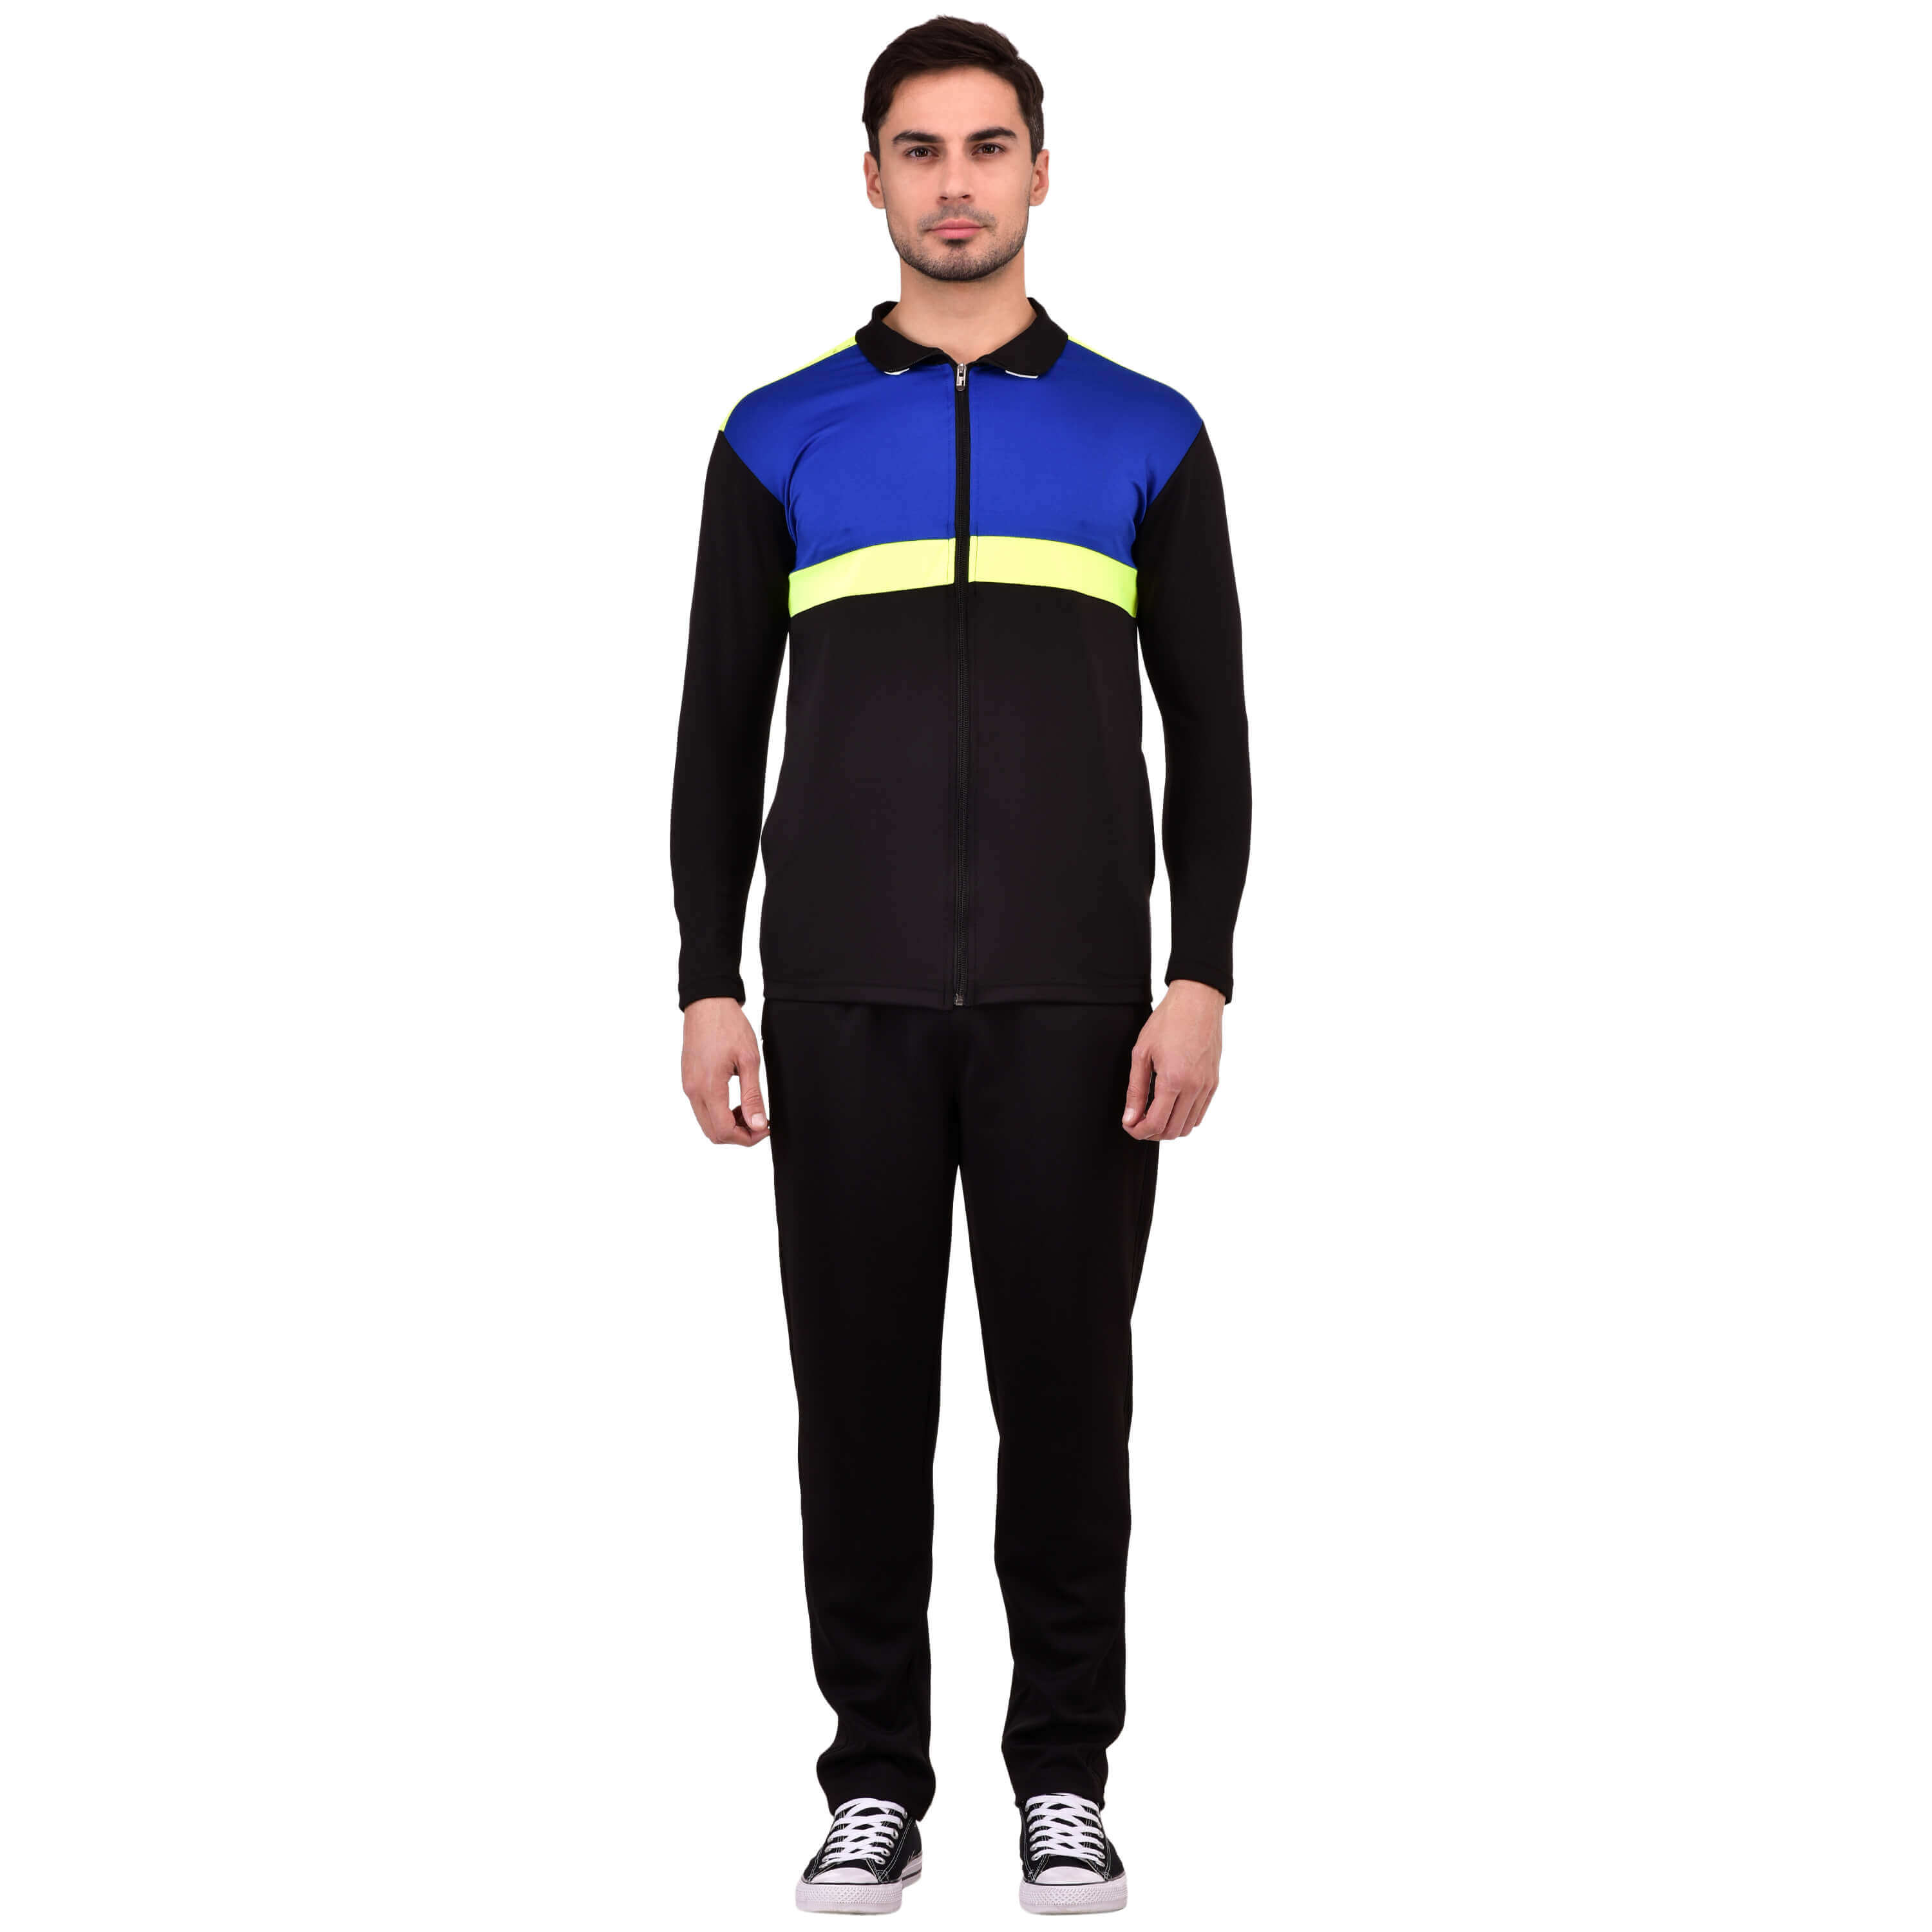 Mens Black Tracksuit Manufacturers in Bolivia